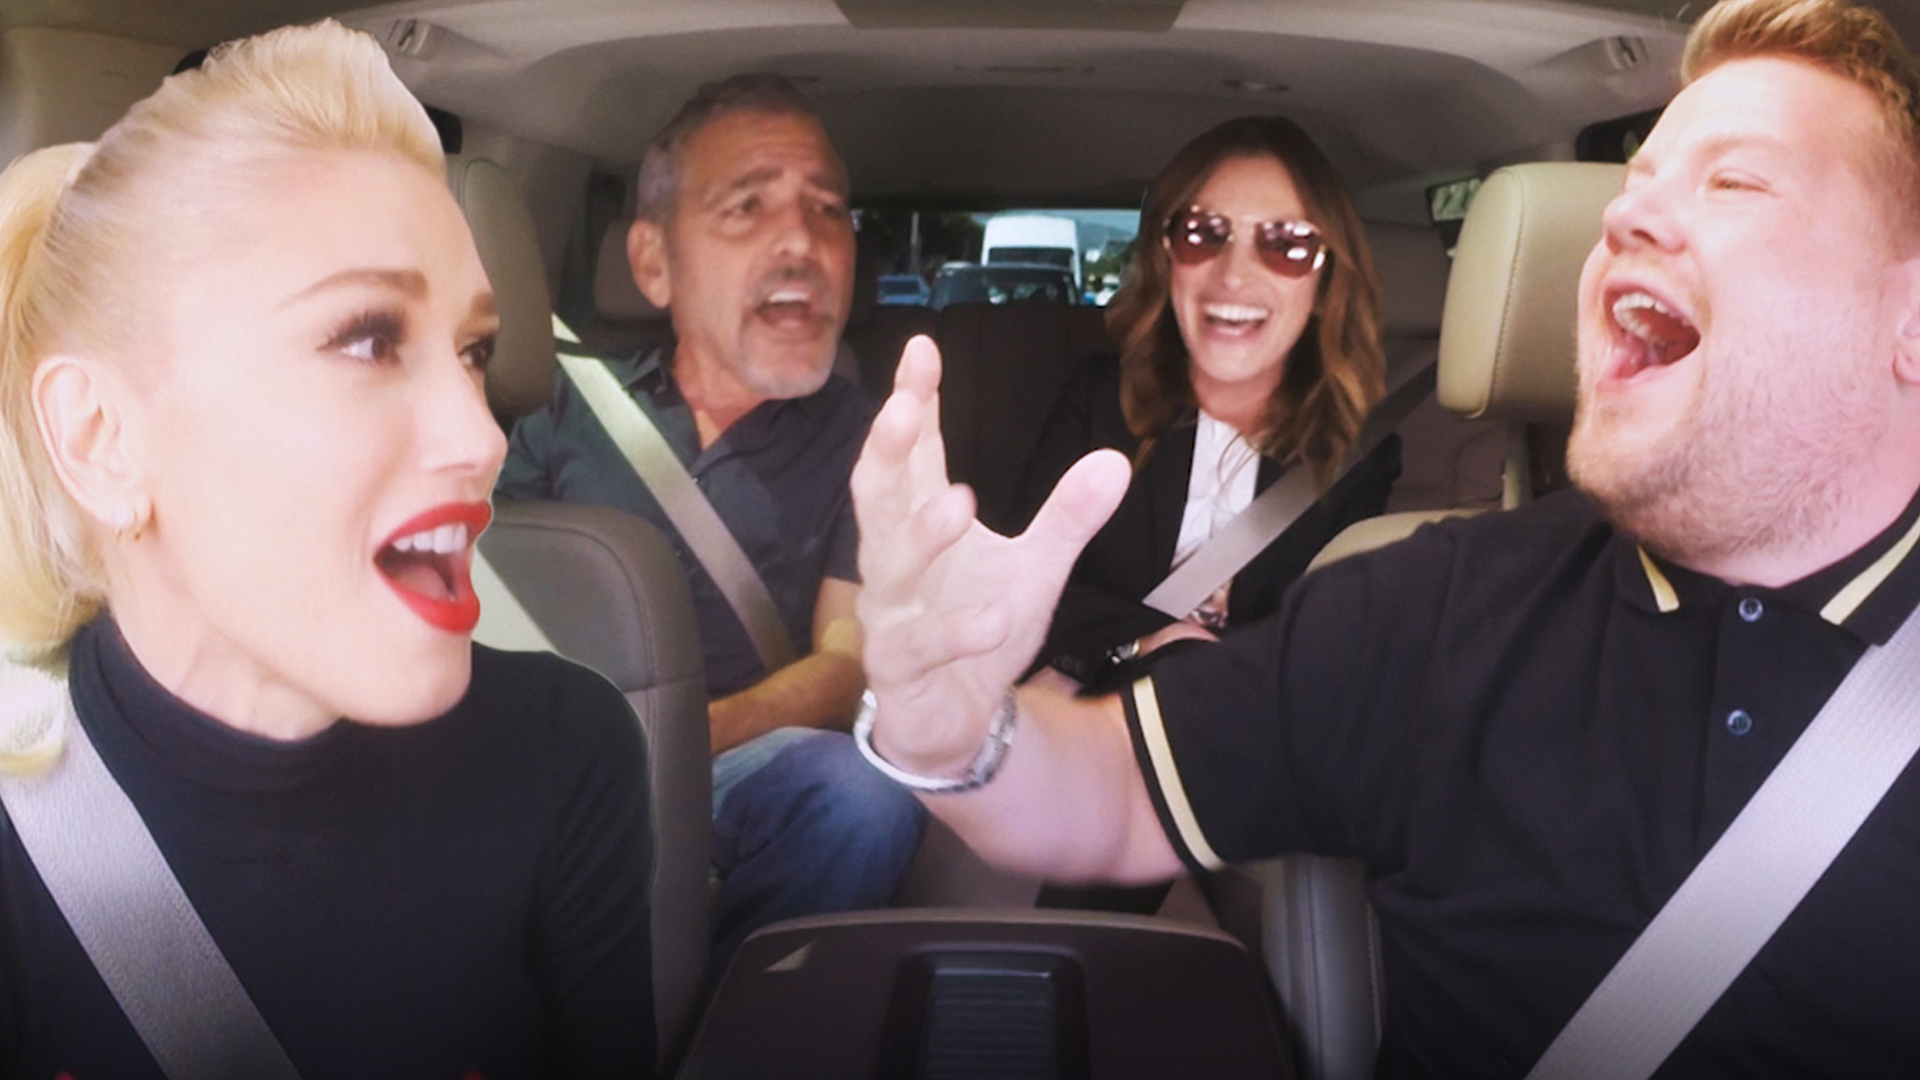 Surprise guests showed up during Gwen Stefani's Carpool Karaoke on The Late Late Show